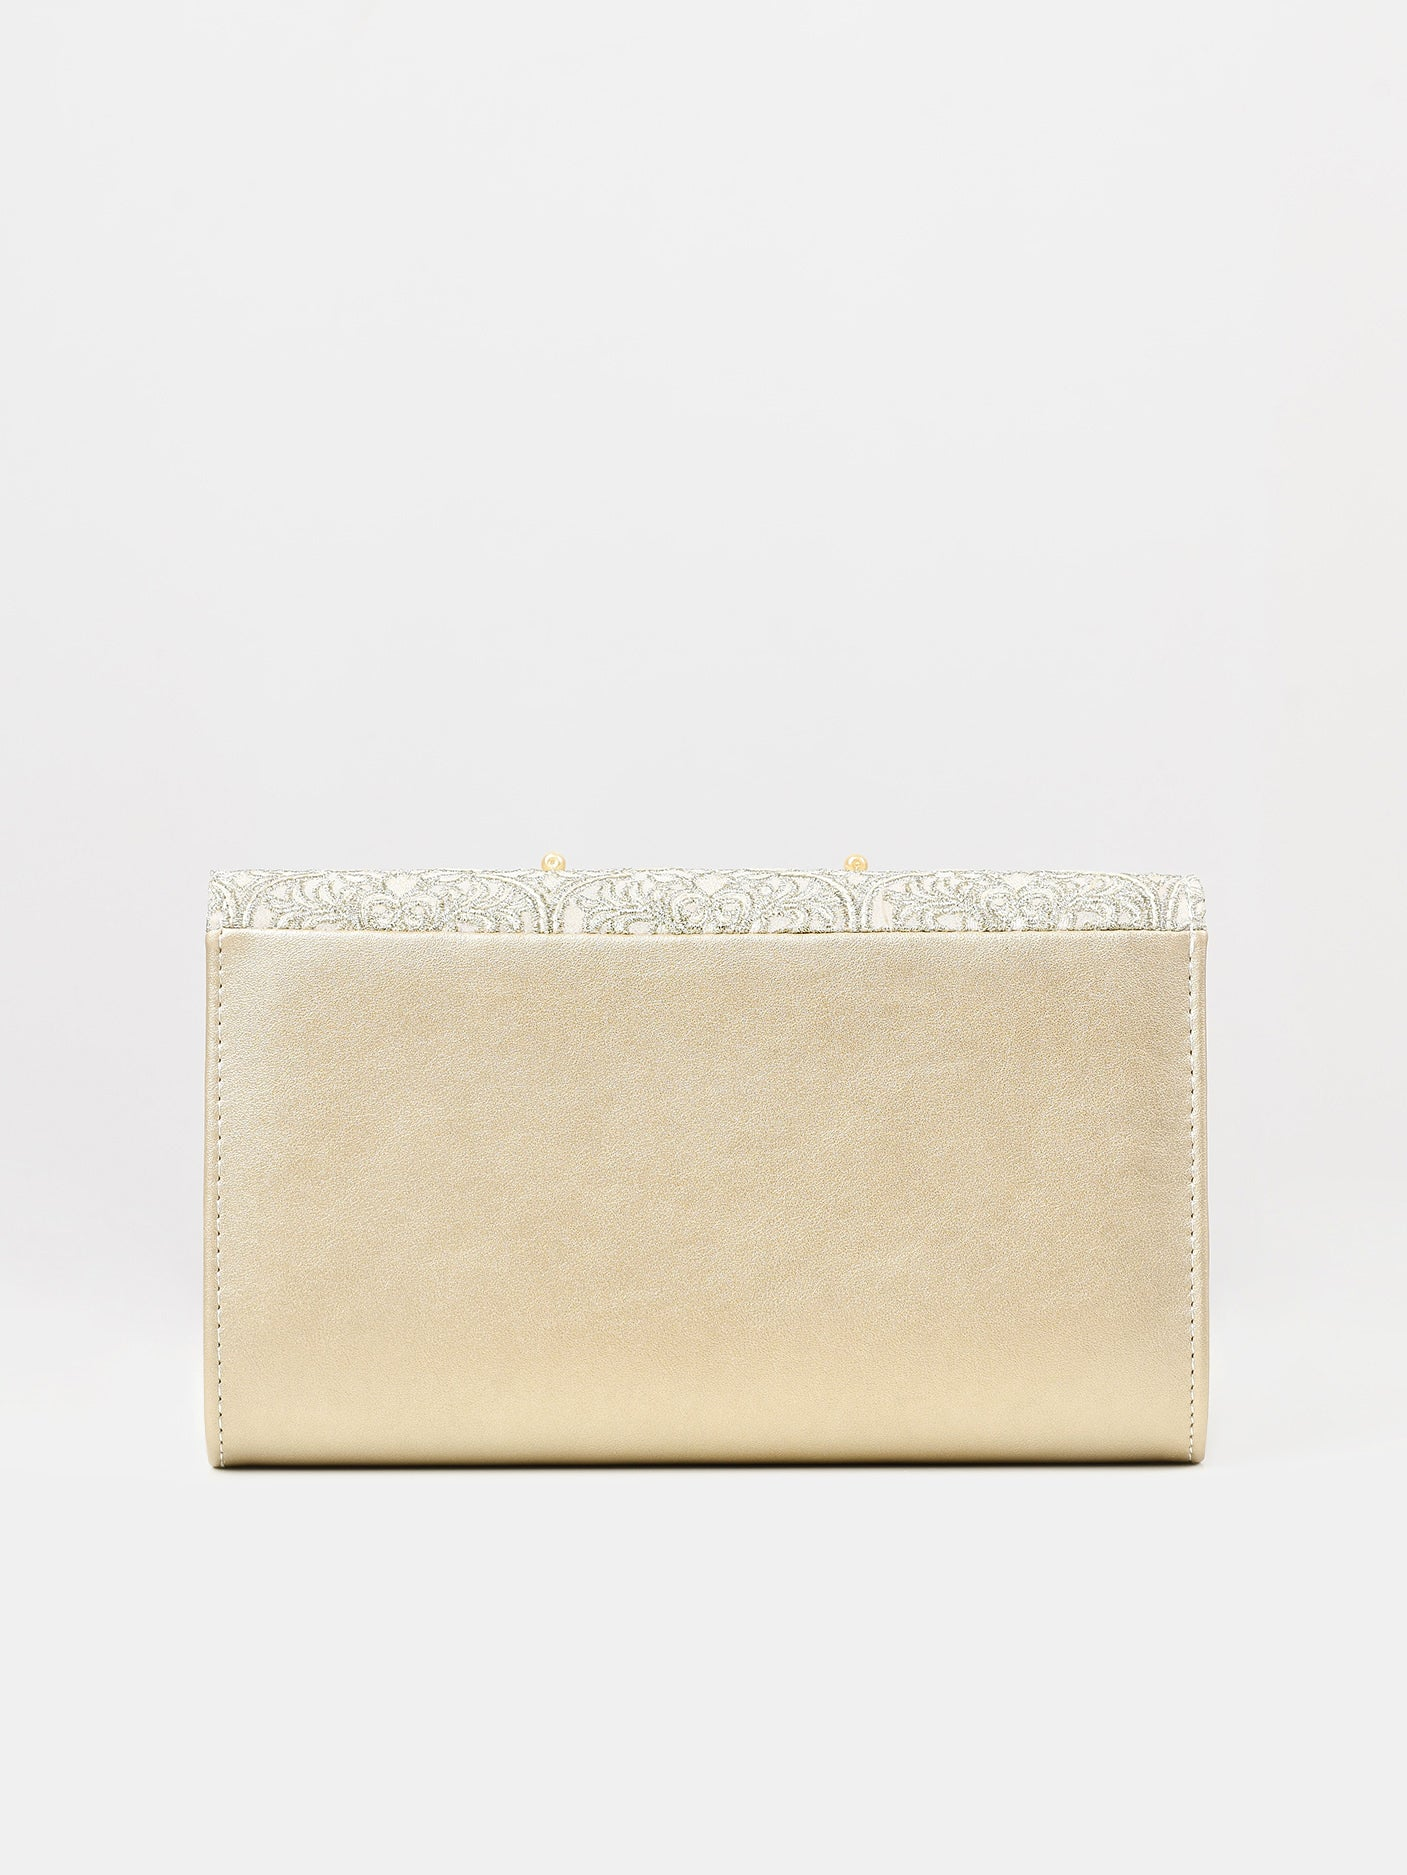 Embellished Clutch